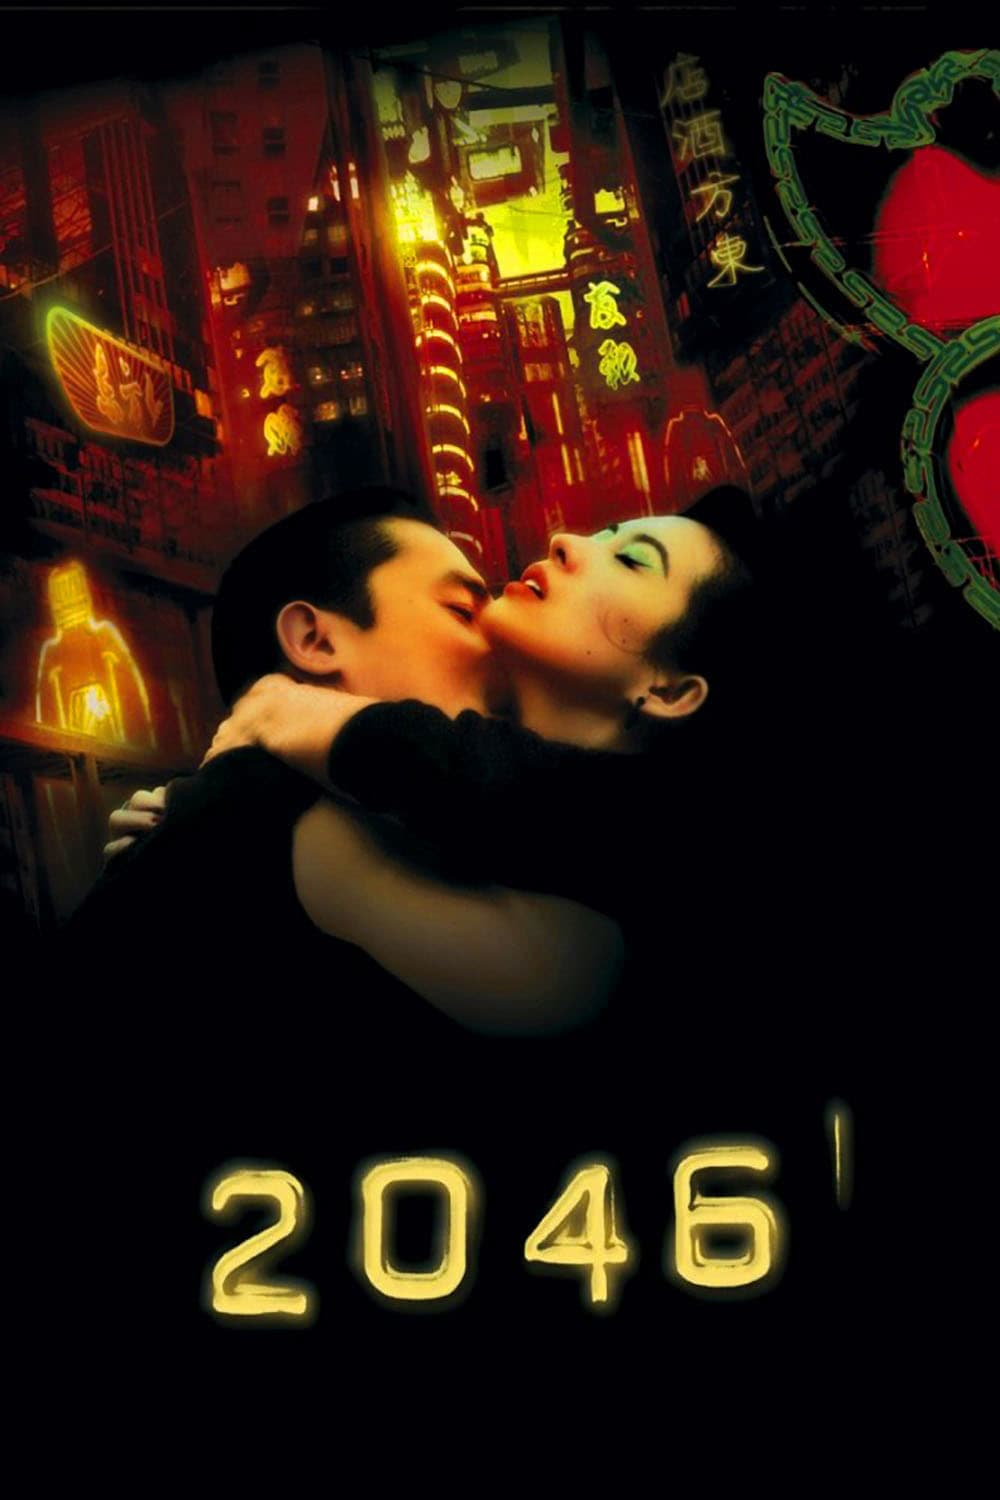 download or watch 2046 full movie online free openload